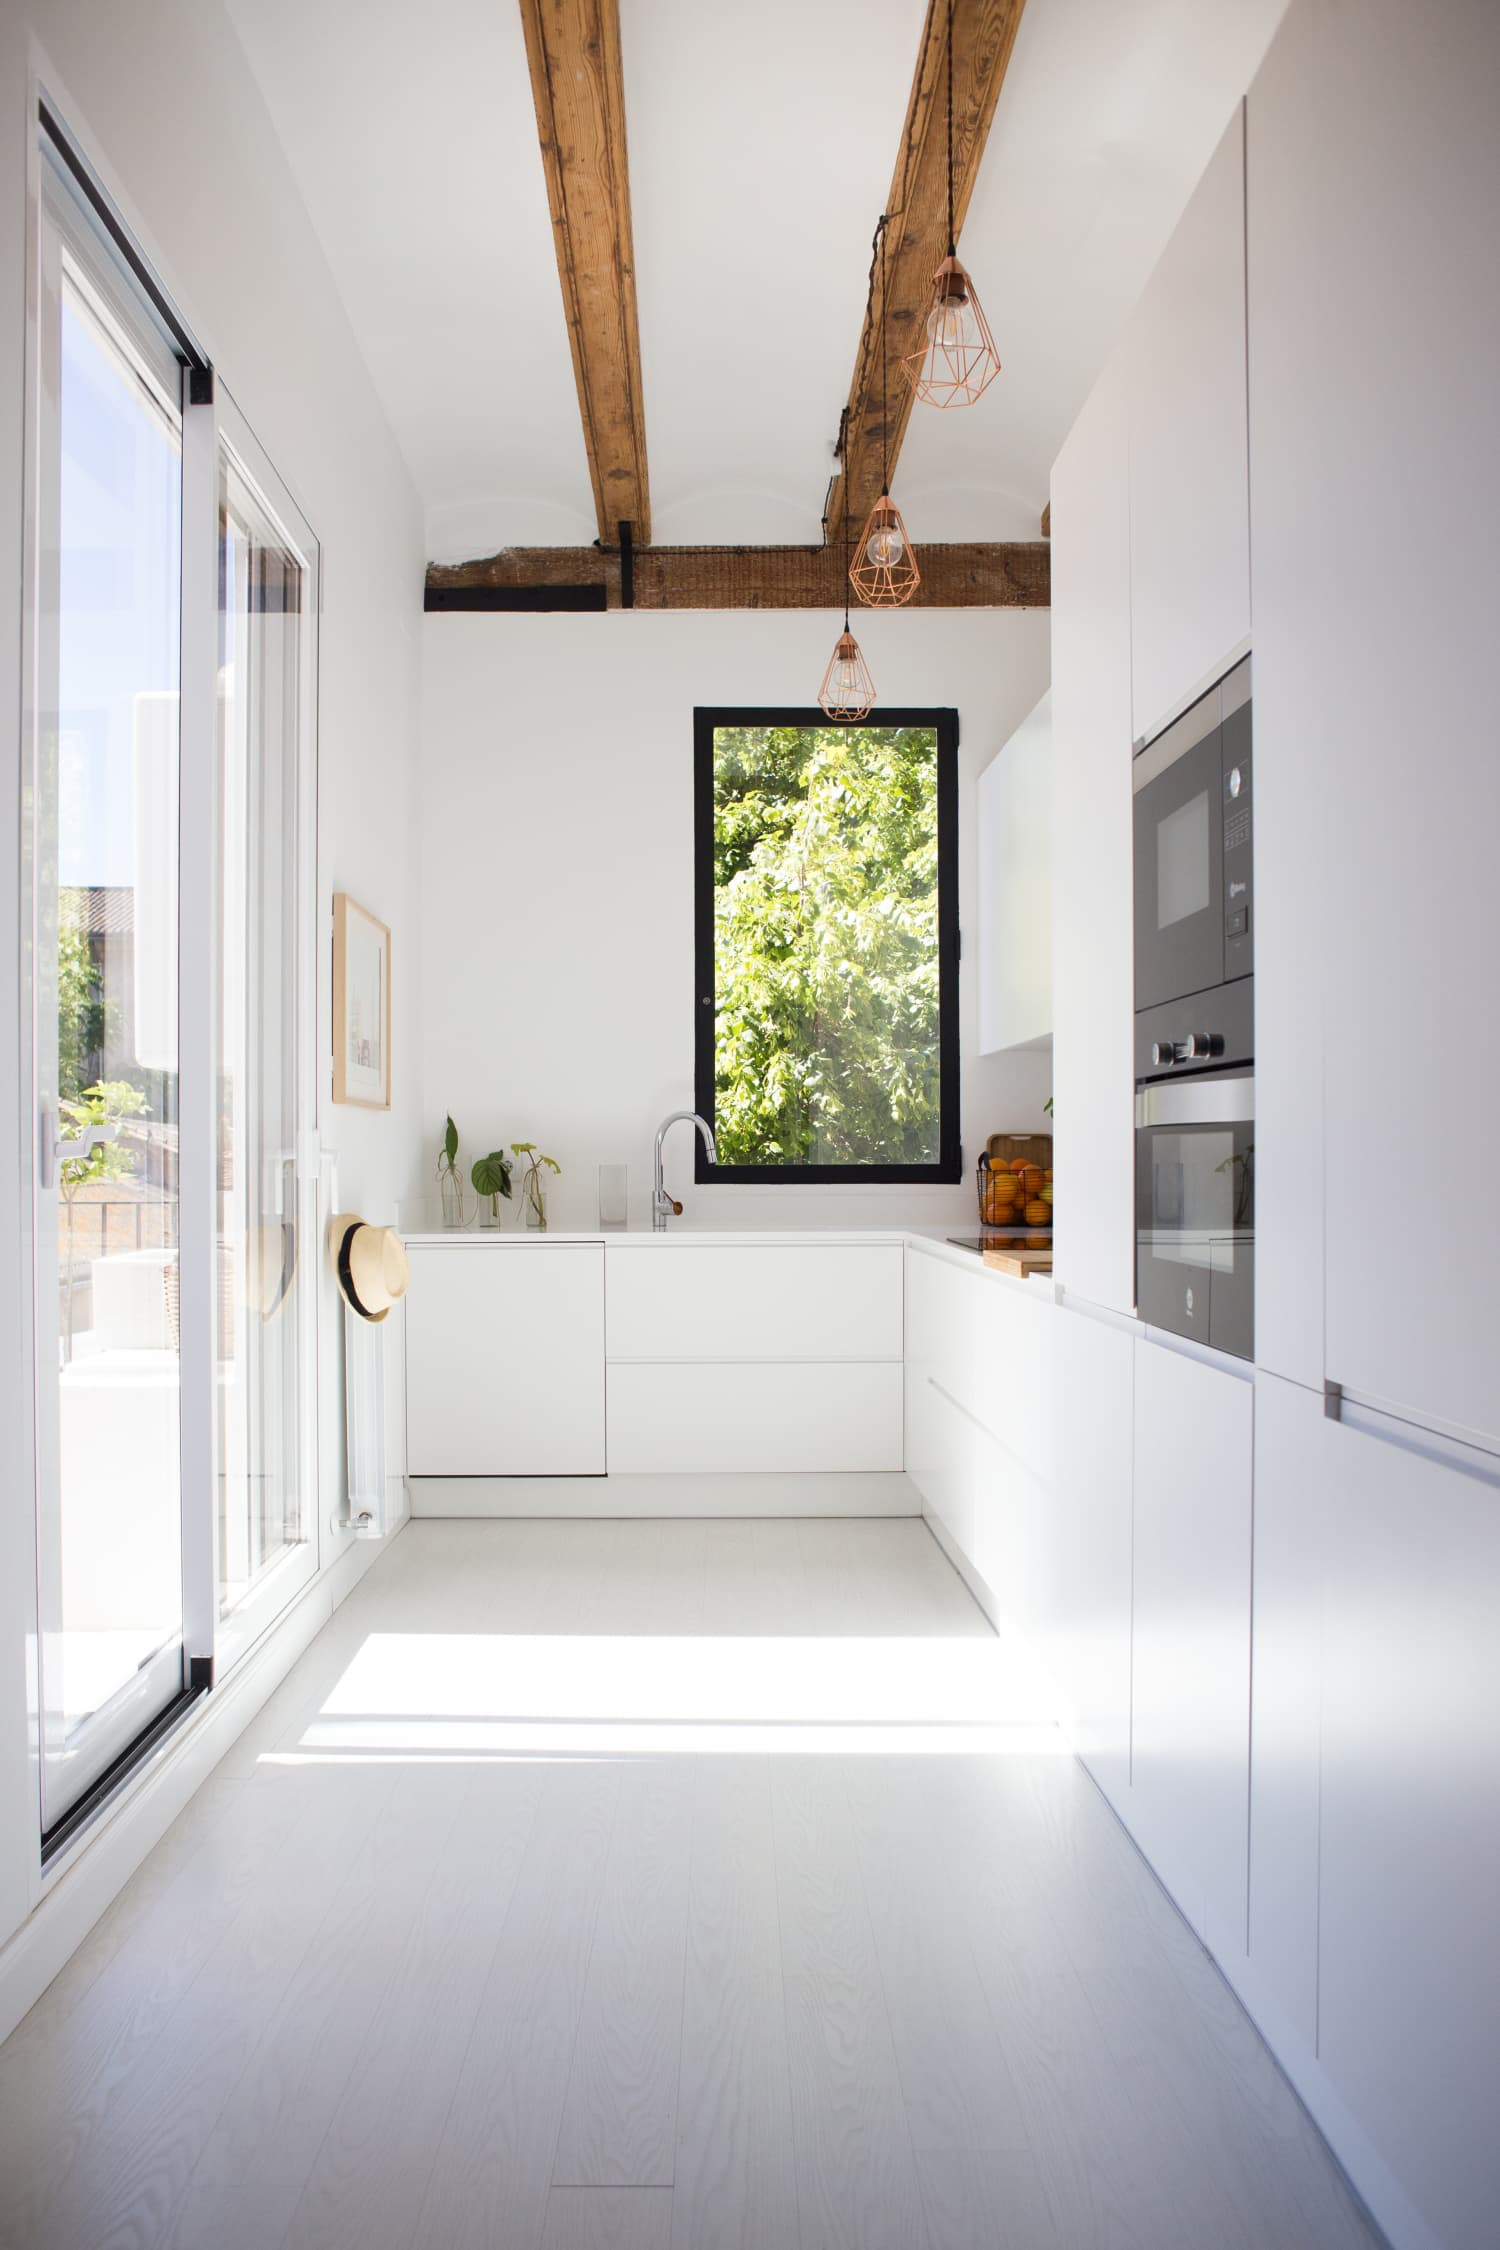 Modern Kitchens That Hide All the Ugly Kitchen Stuff Away